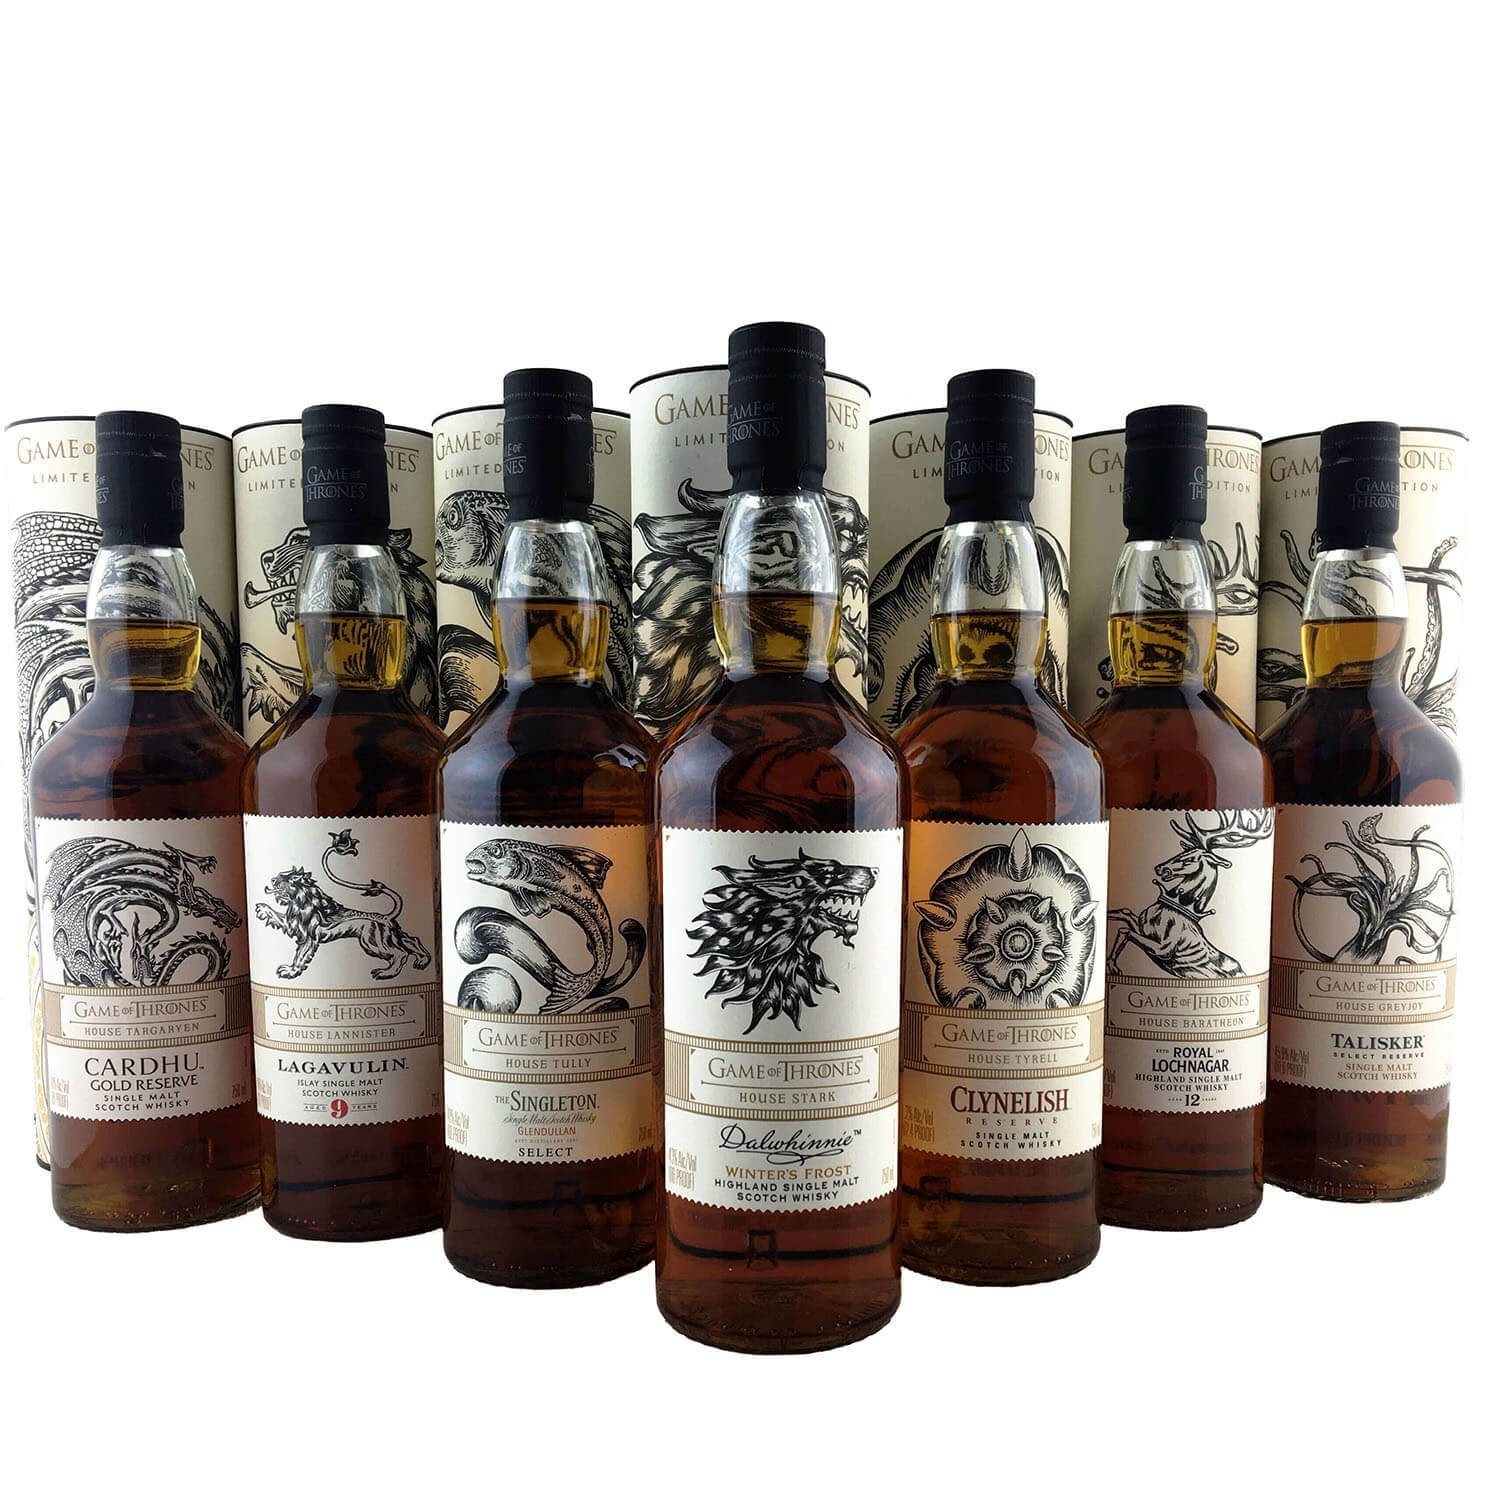 Game Of Thrones Complete Set Bottle Scotch Whisky Collection 8 X